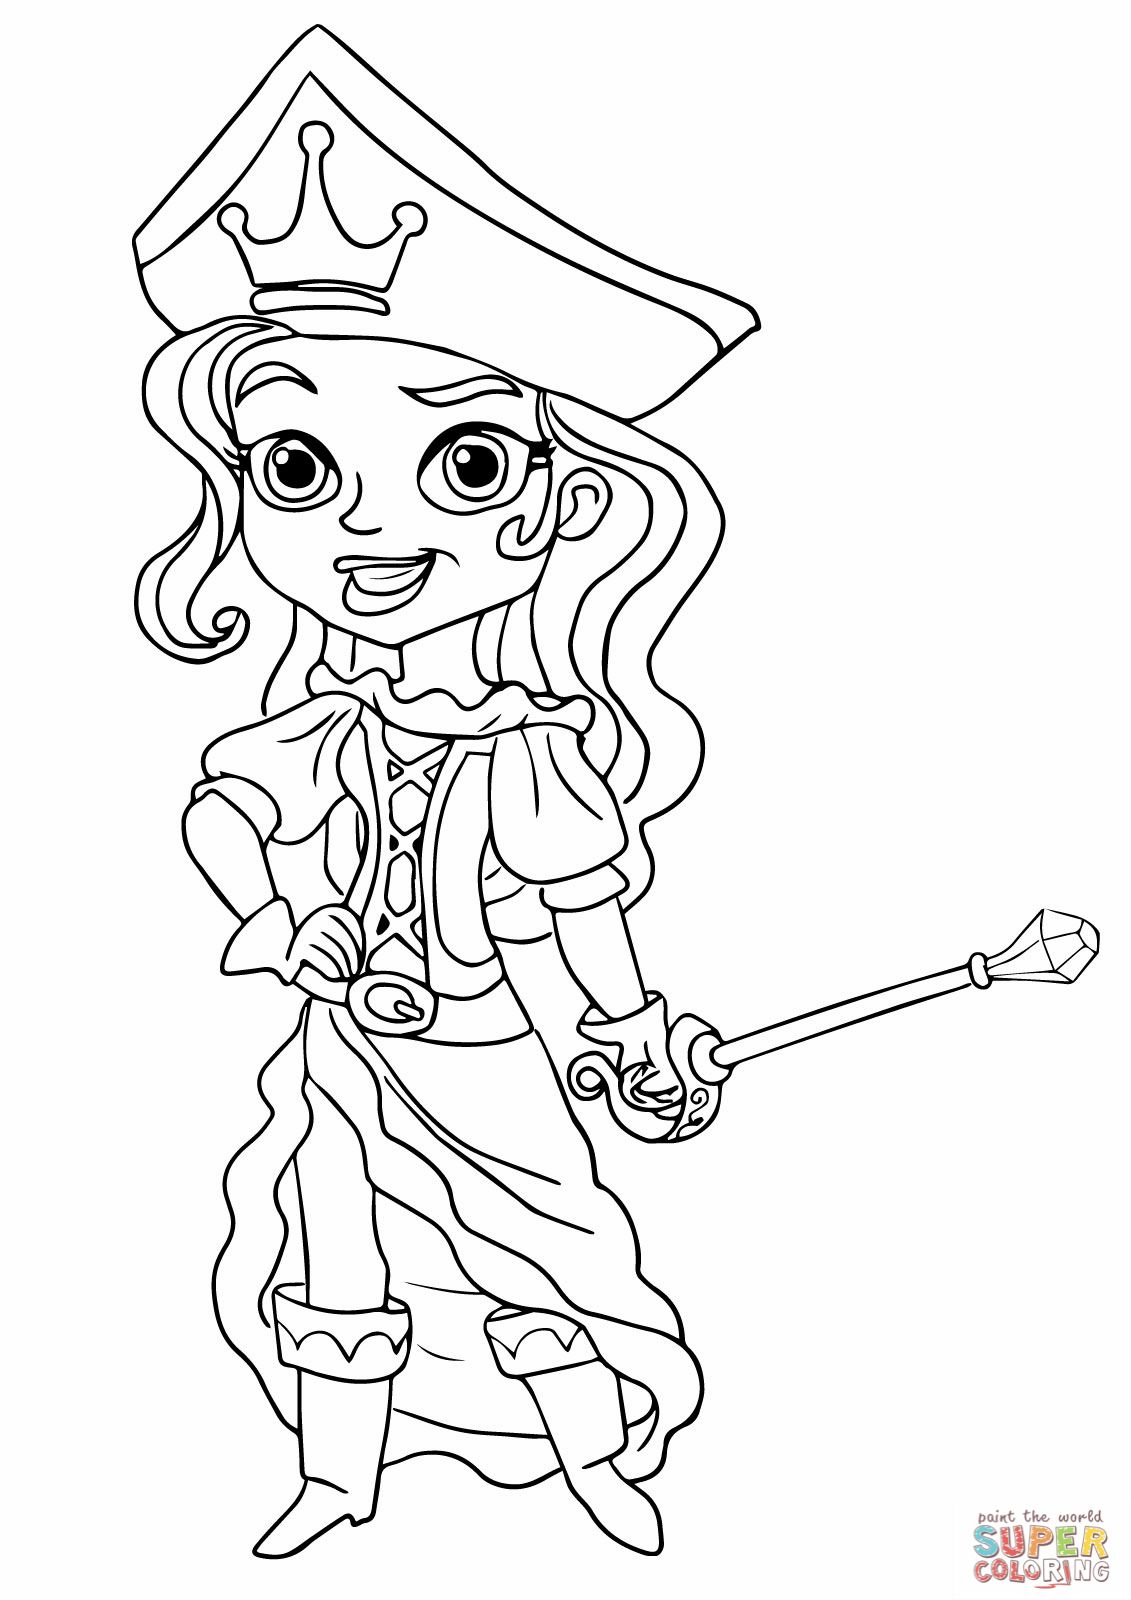 jake-and-the-neverland-pirates-pirate-princess-coloring-page.jpg ...